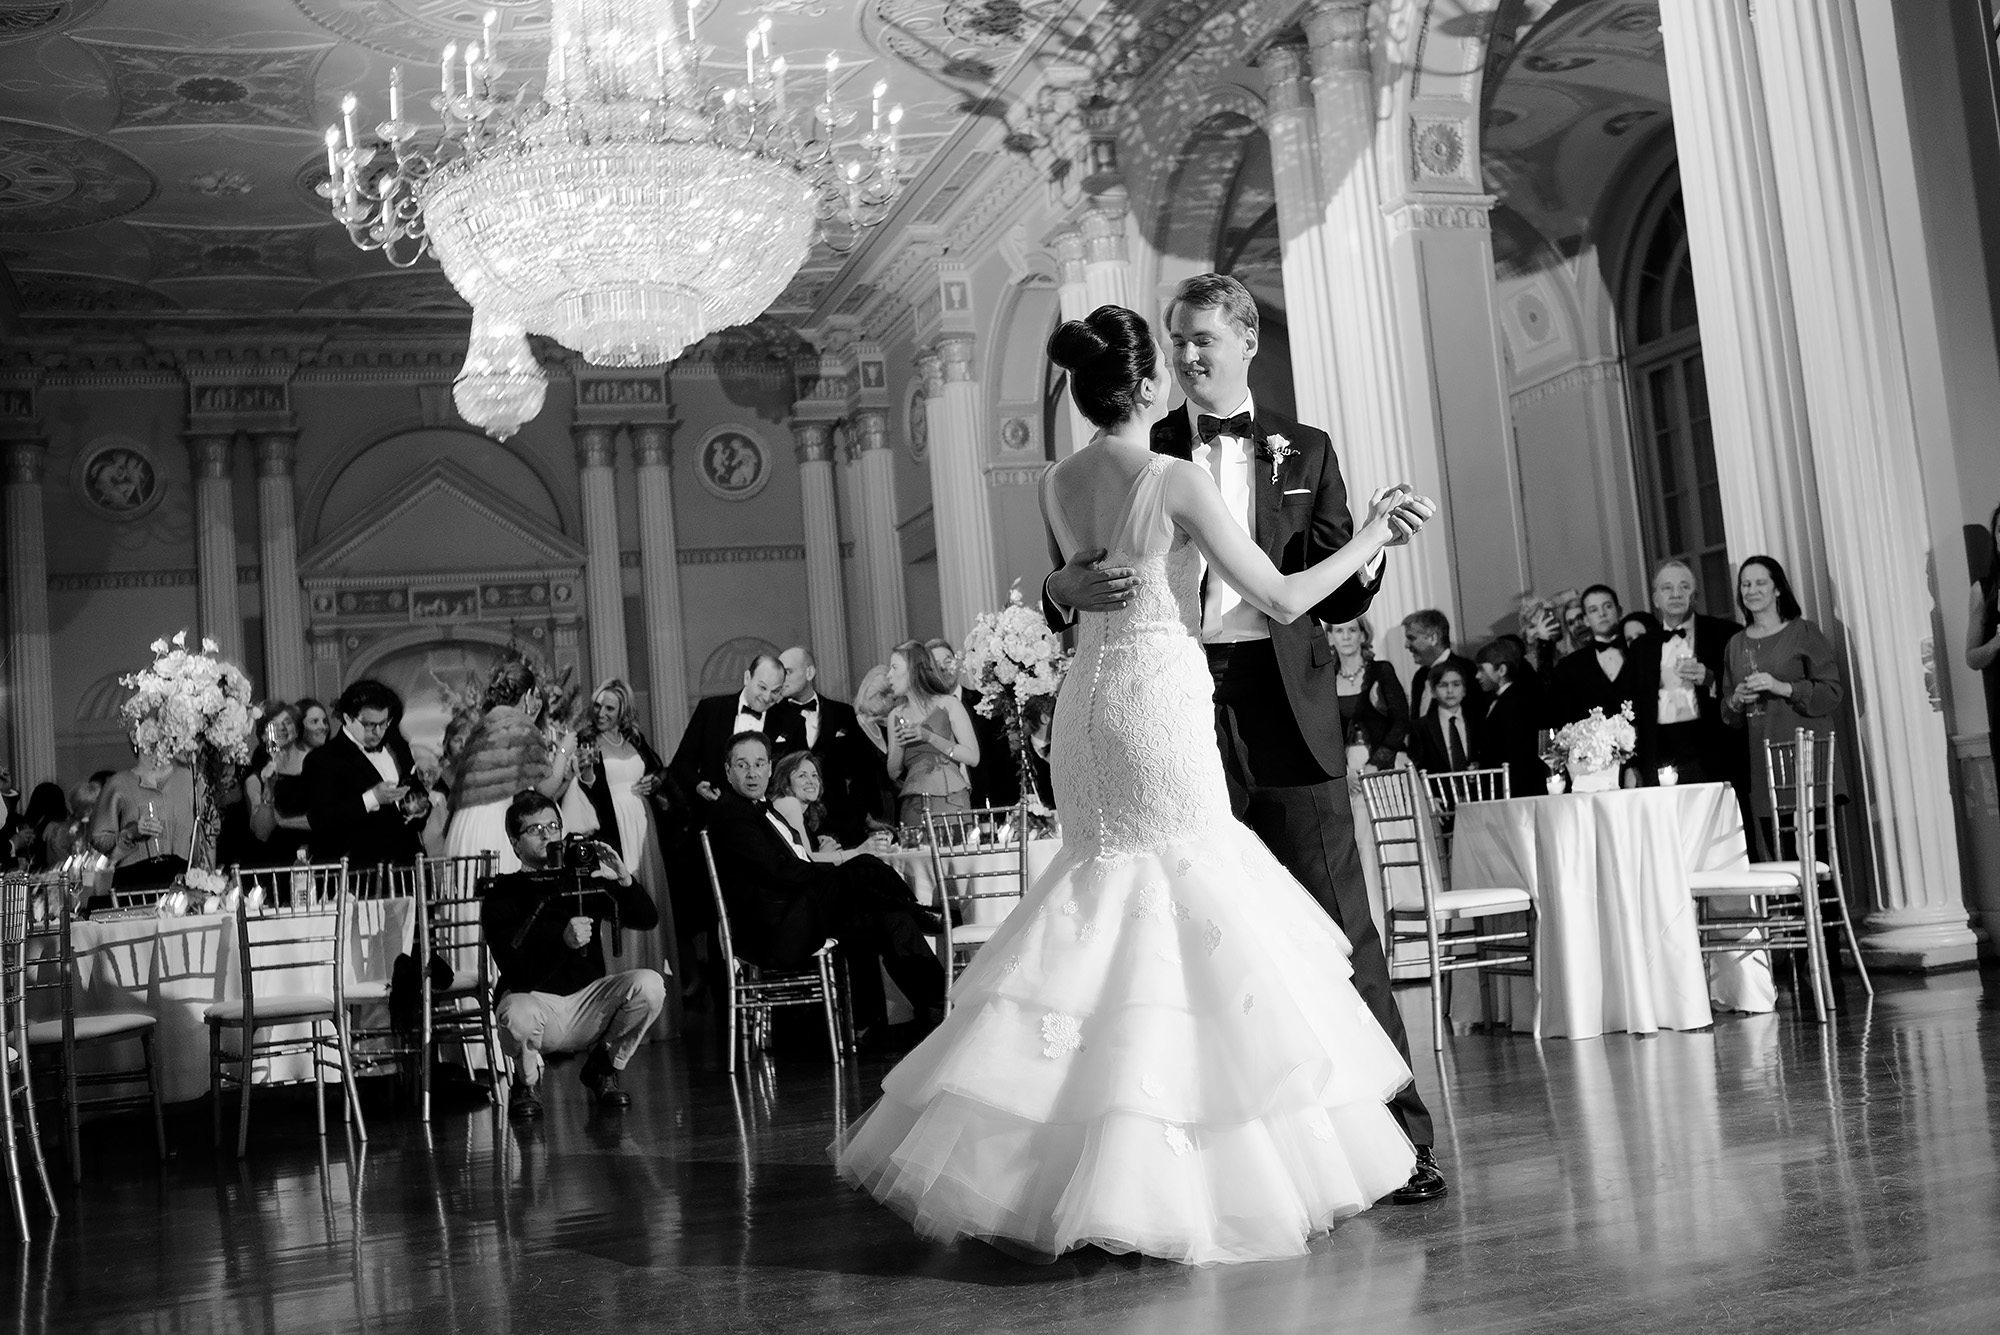 Tayloe and Isabel | Wedding at The Cathedral of St. Philip | Reception at The Biltmore Ballrooms